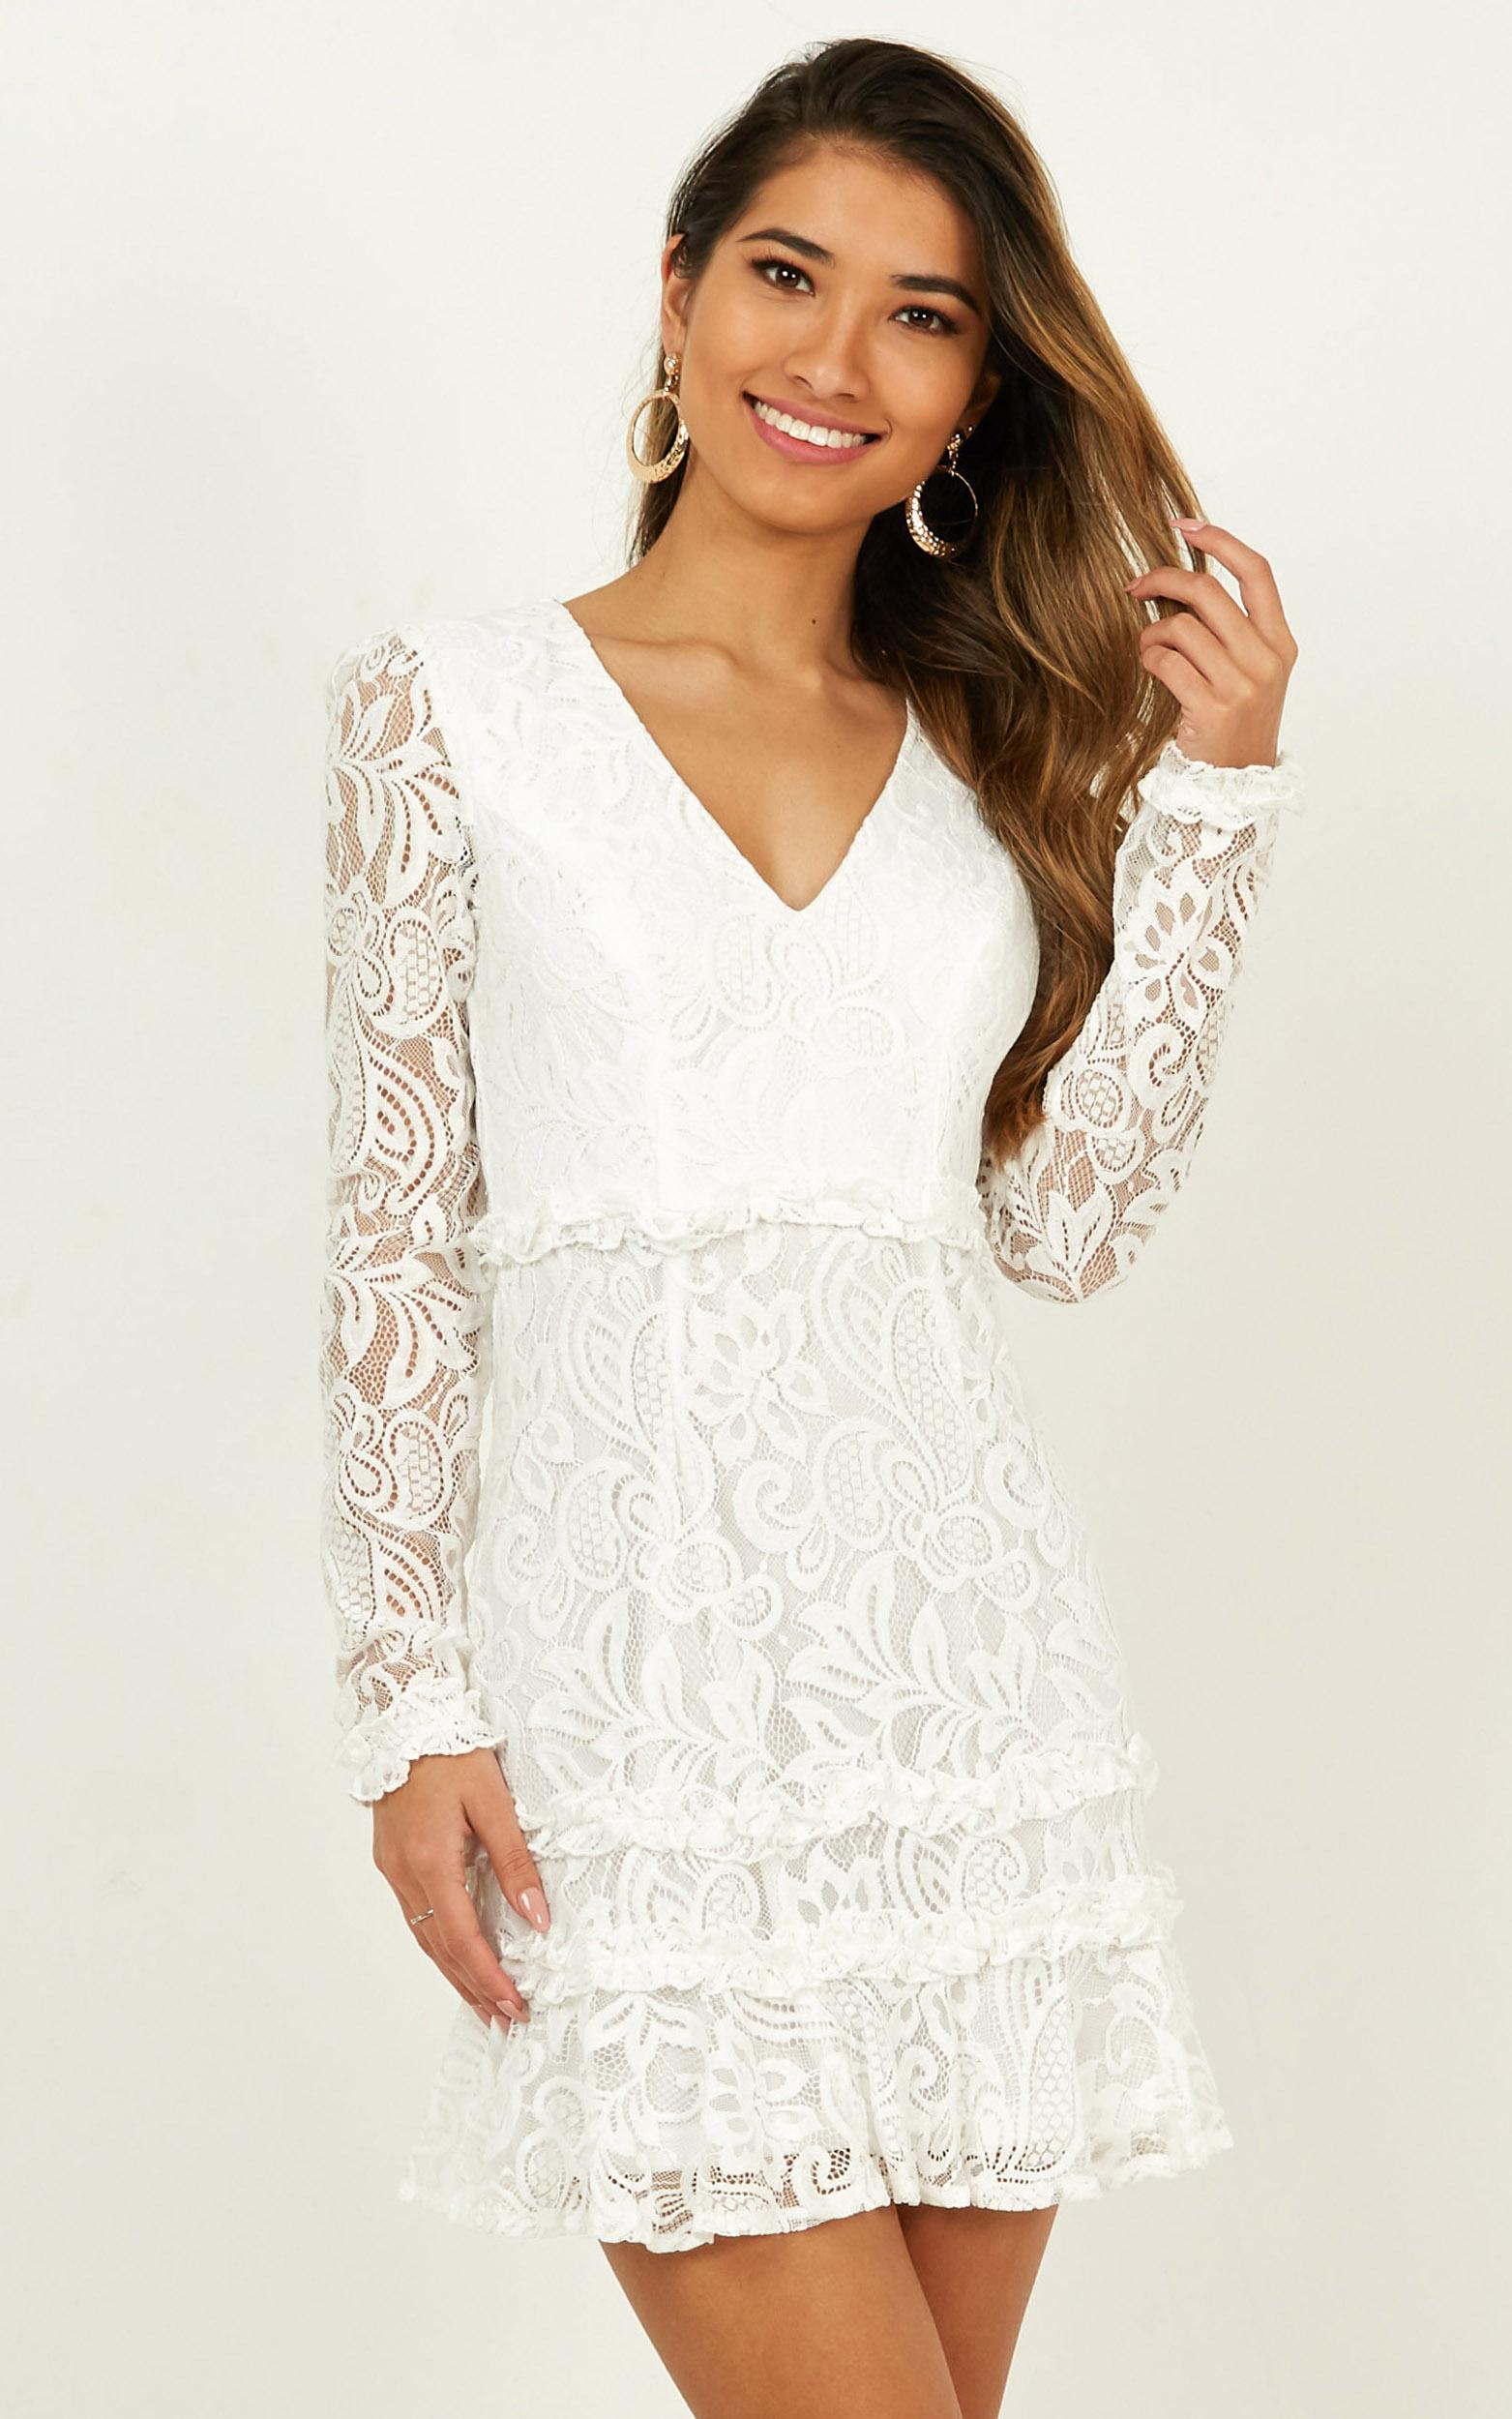 Mermaid Moment Dress In White Lace